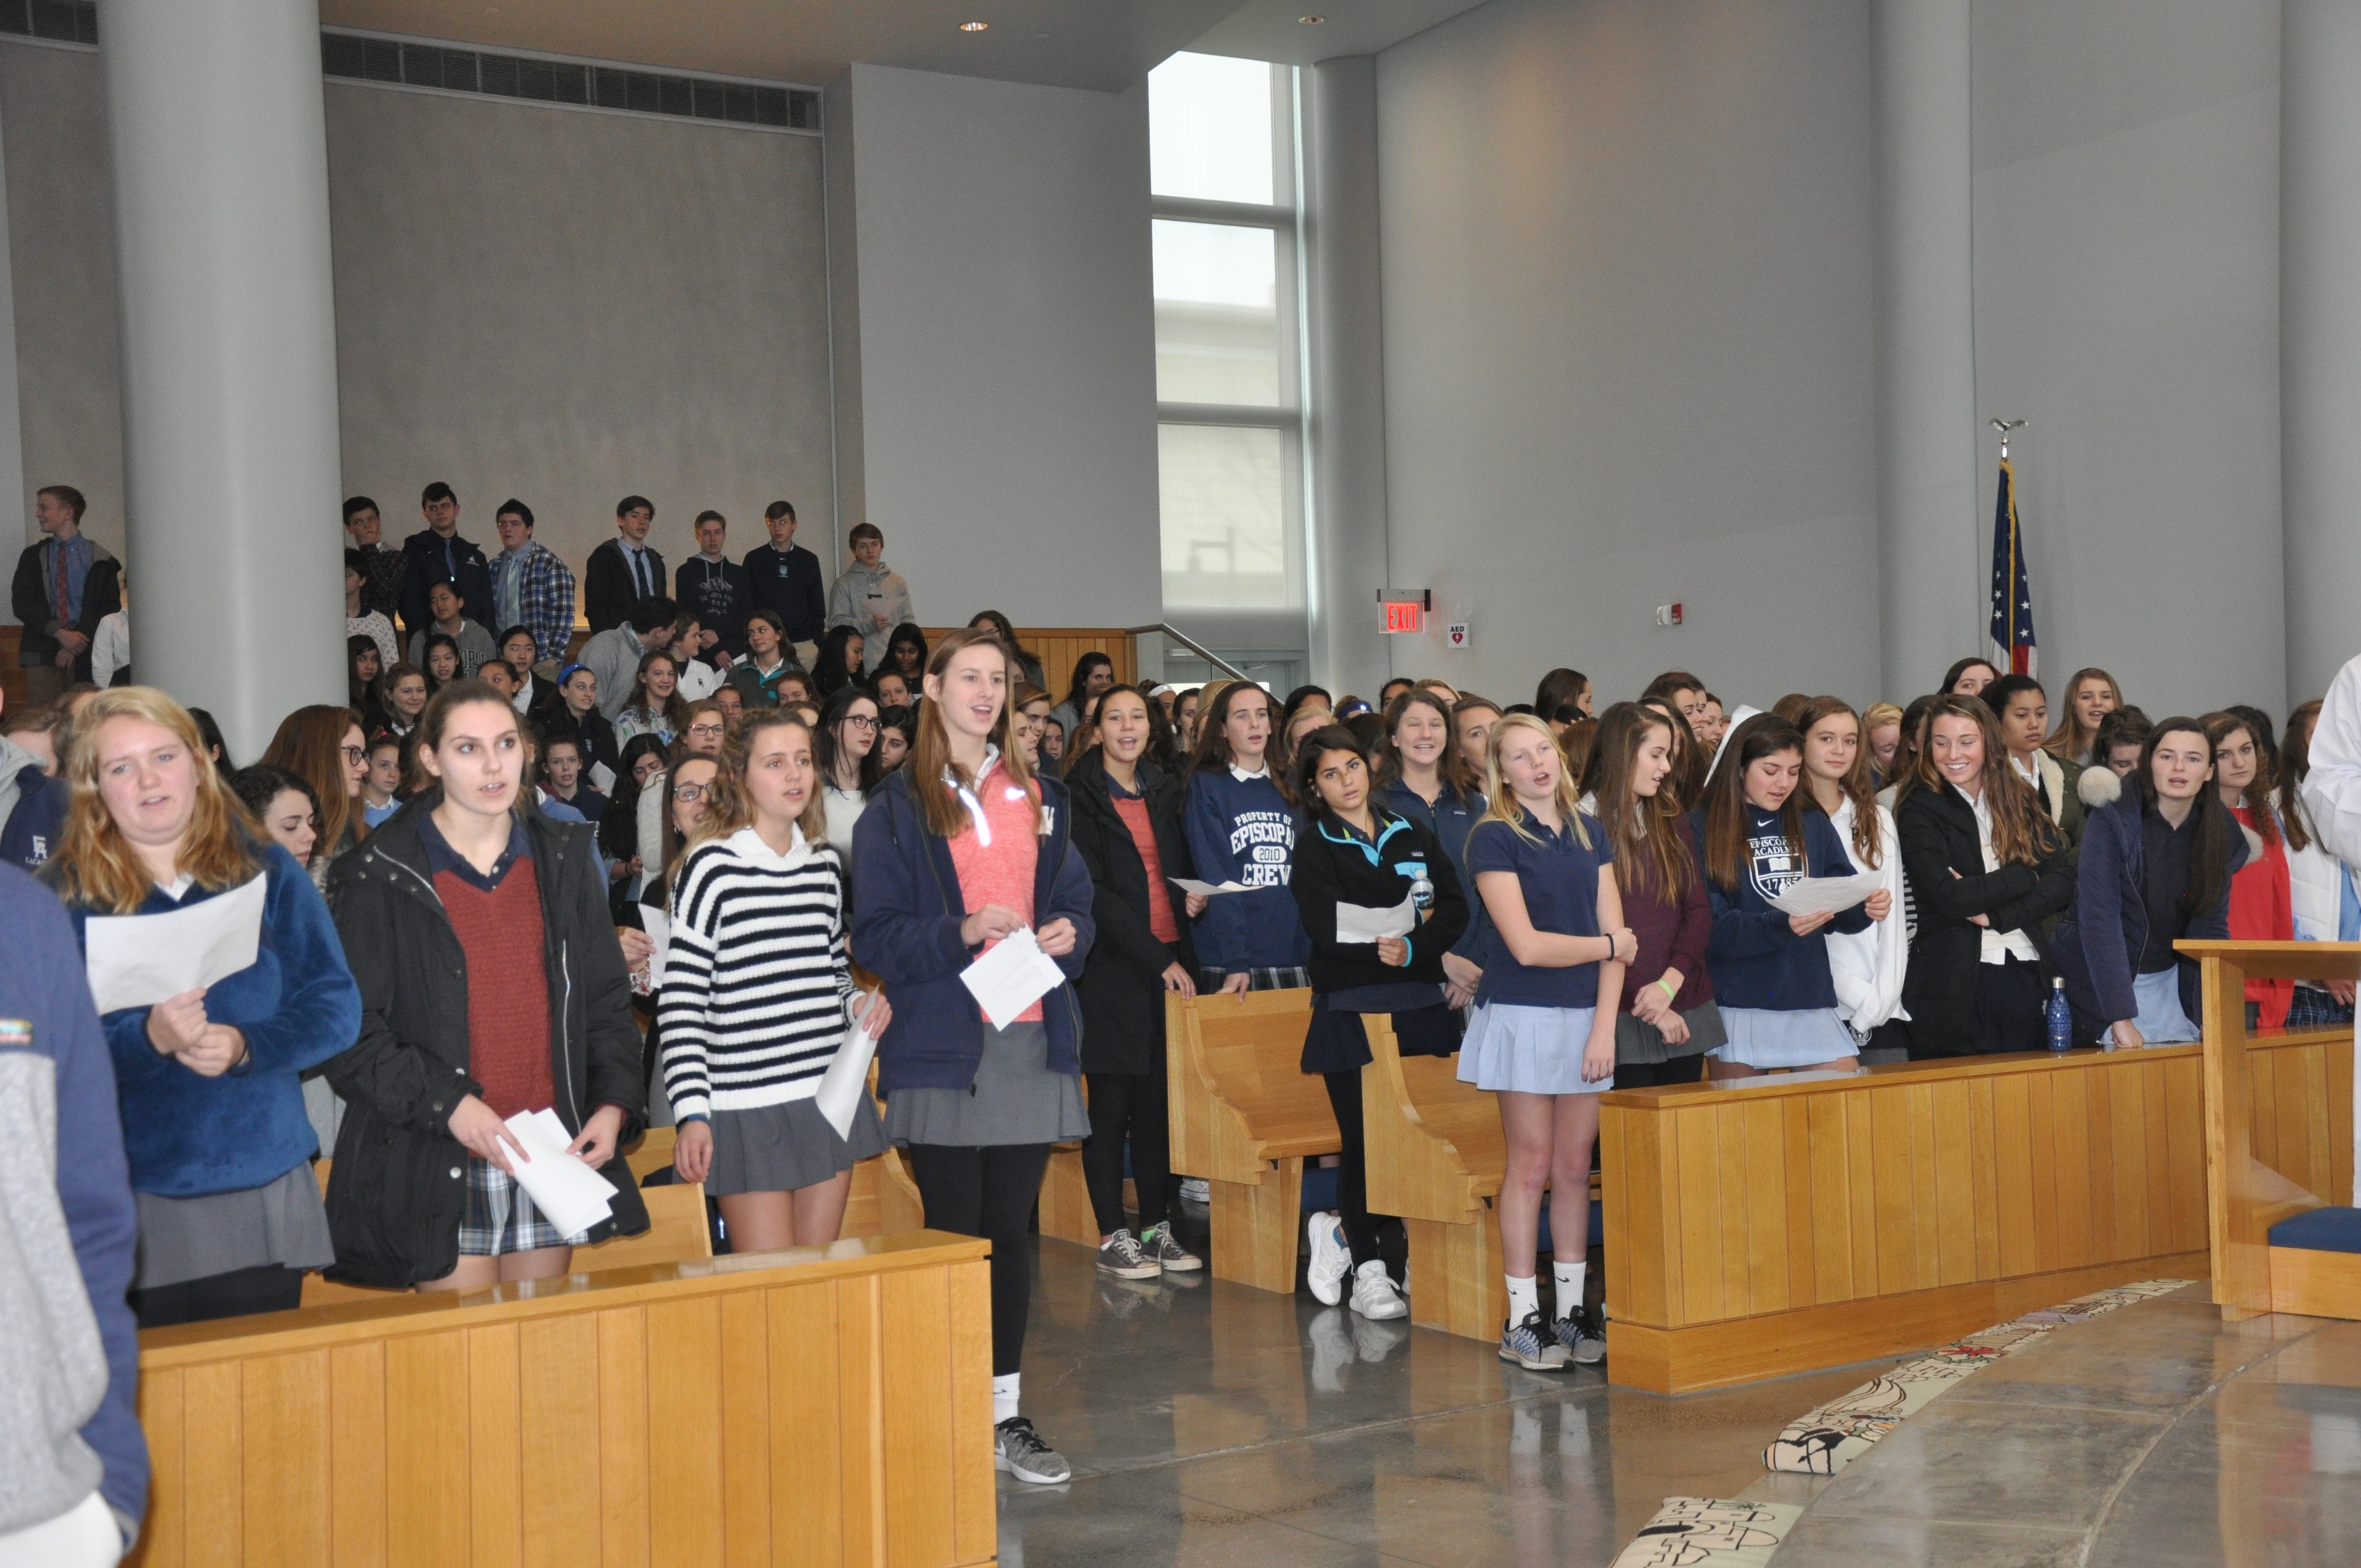 Episcopal Academy, The - News Post Details